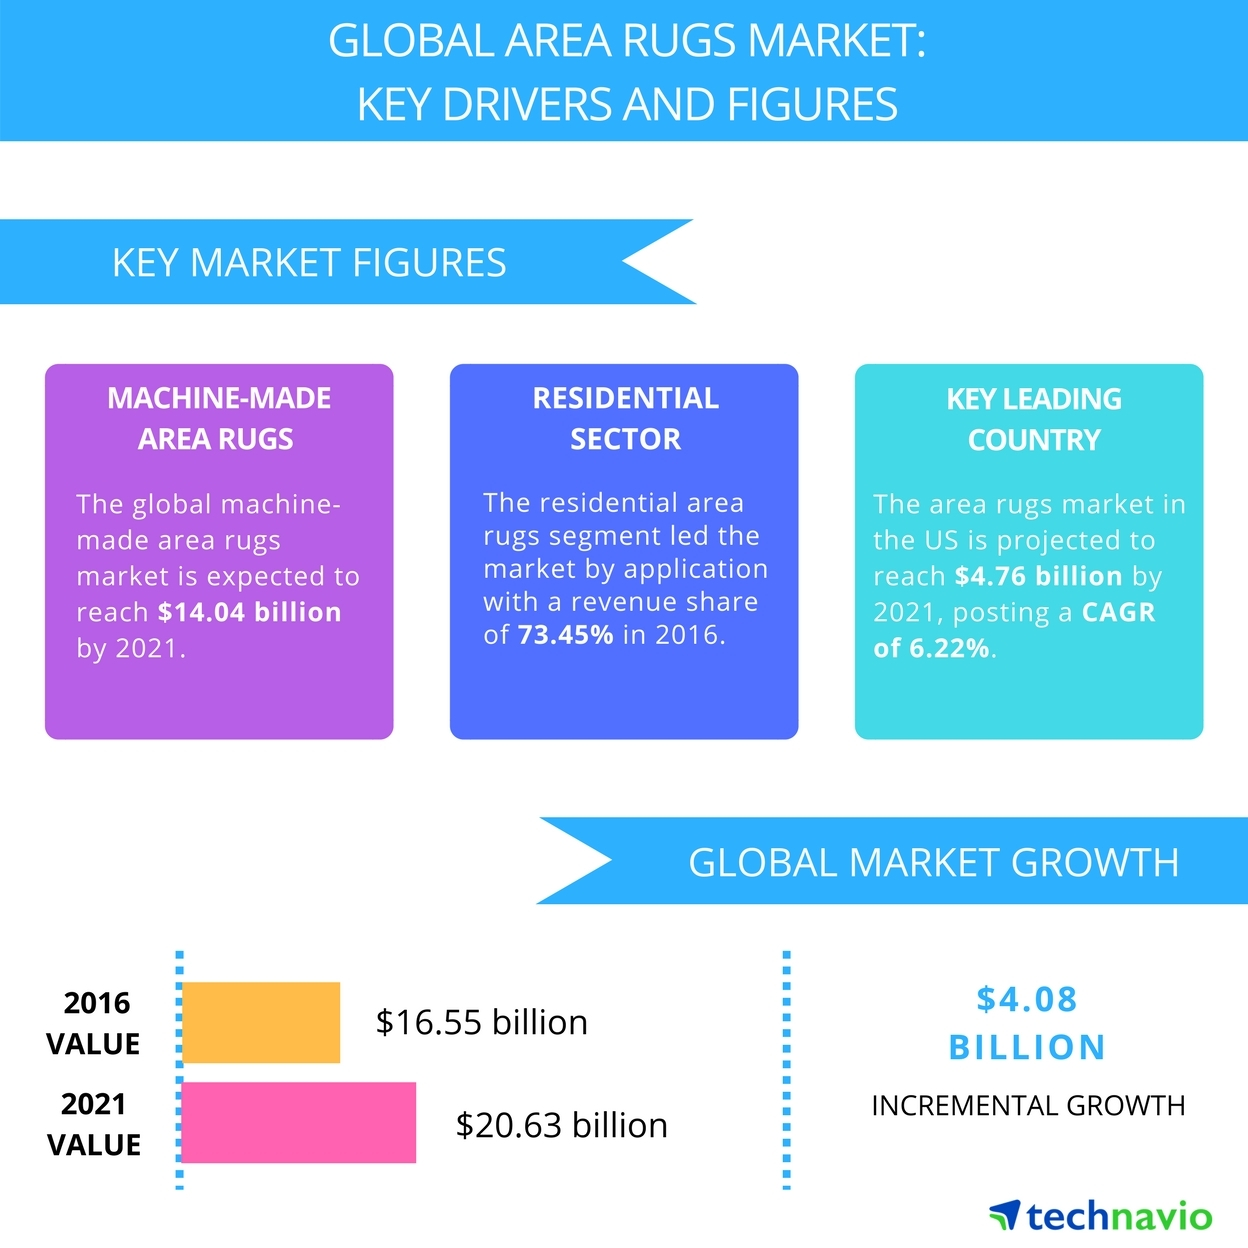 Vendors In The Global Area Rugs Market